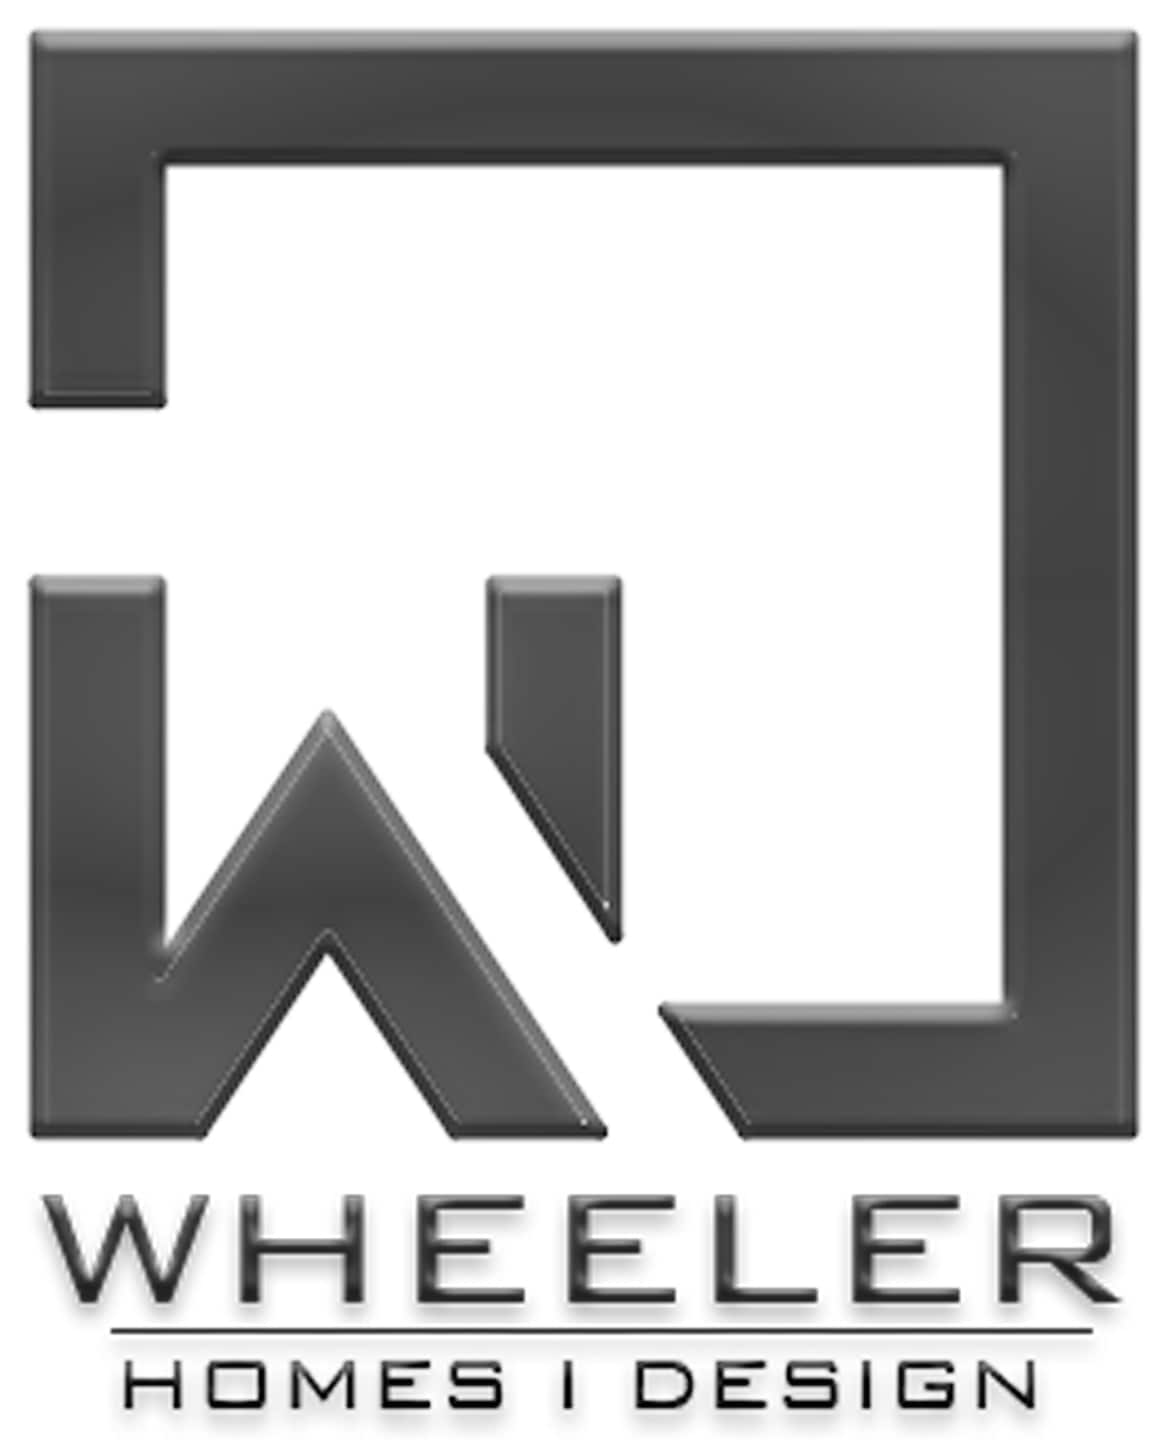 Wheeler Homes and Design